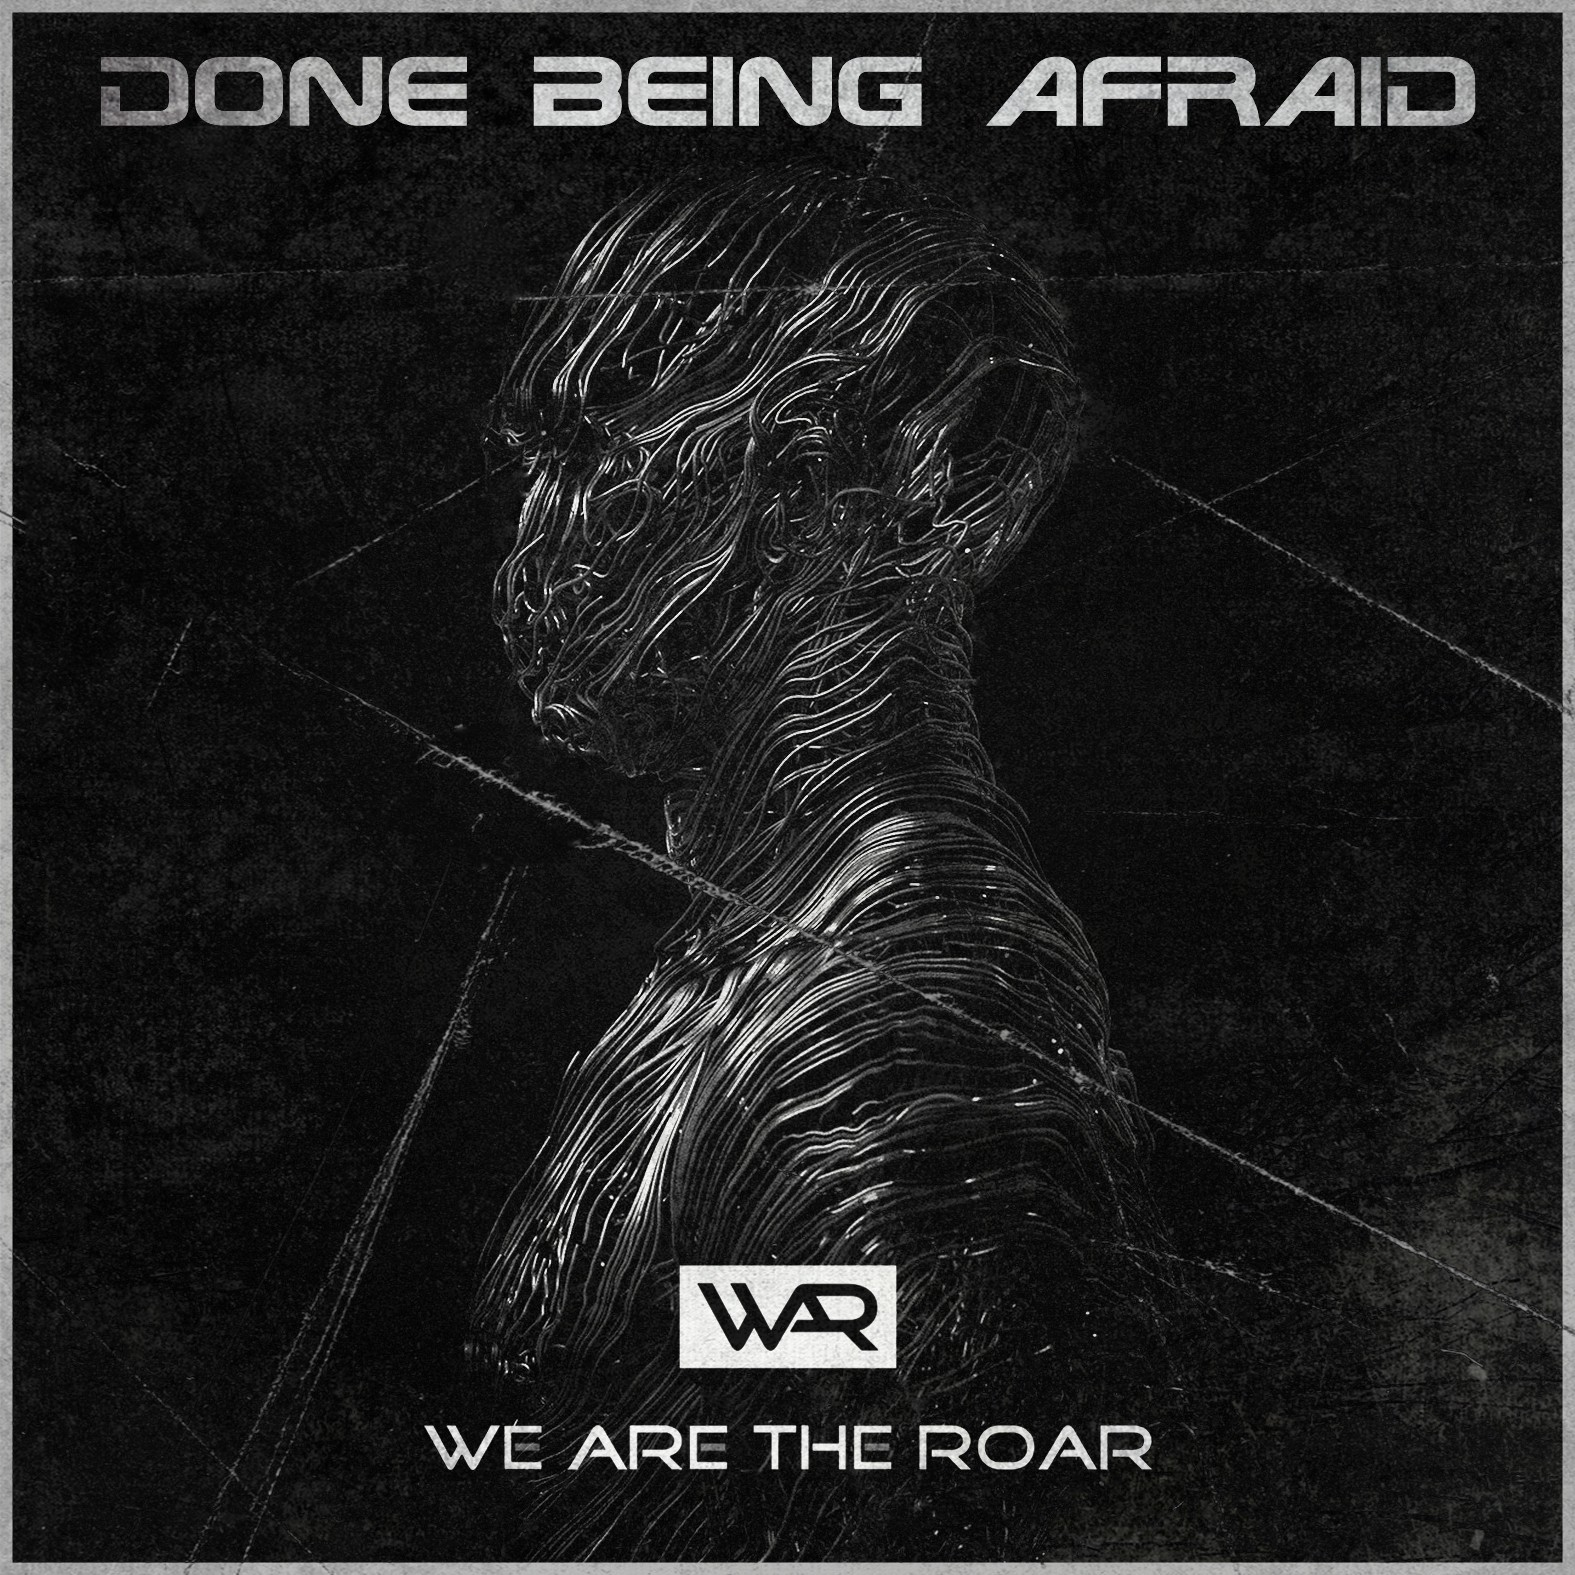 We need a powerful cover for our new single, Done Being Afraid